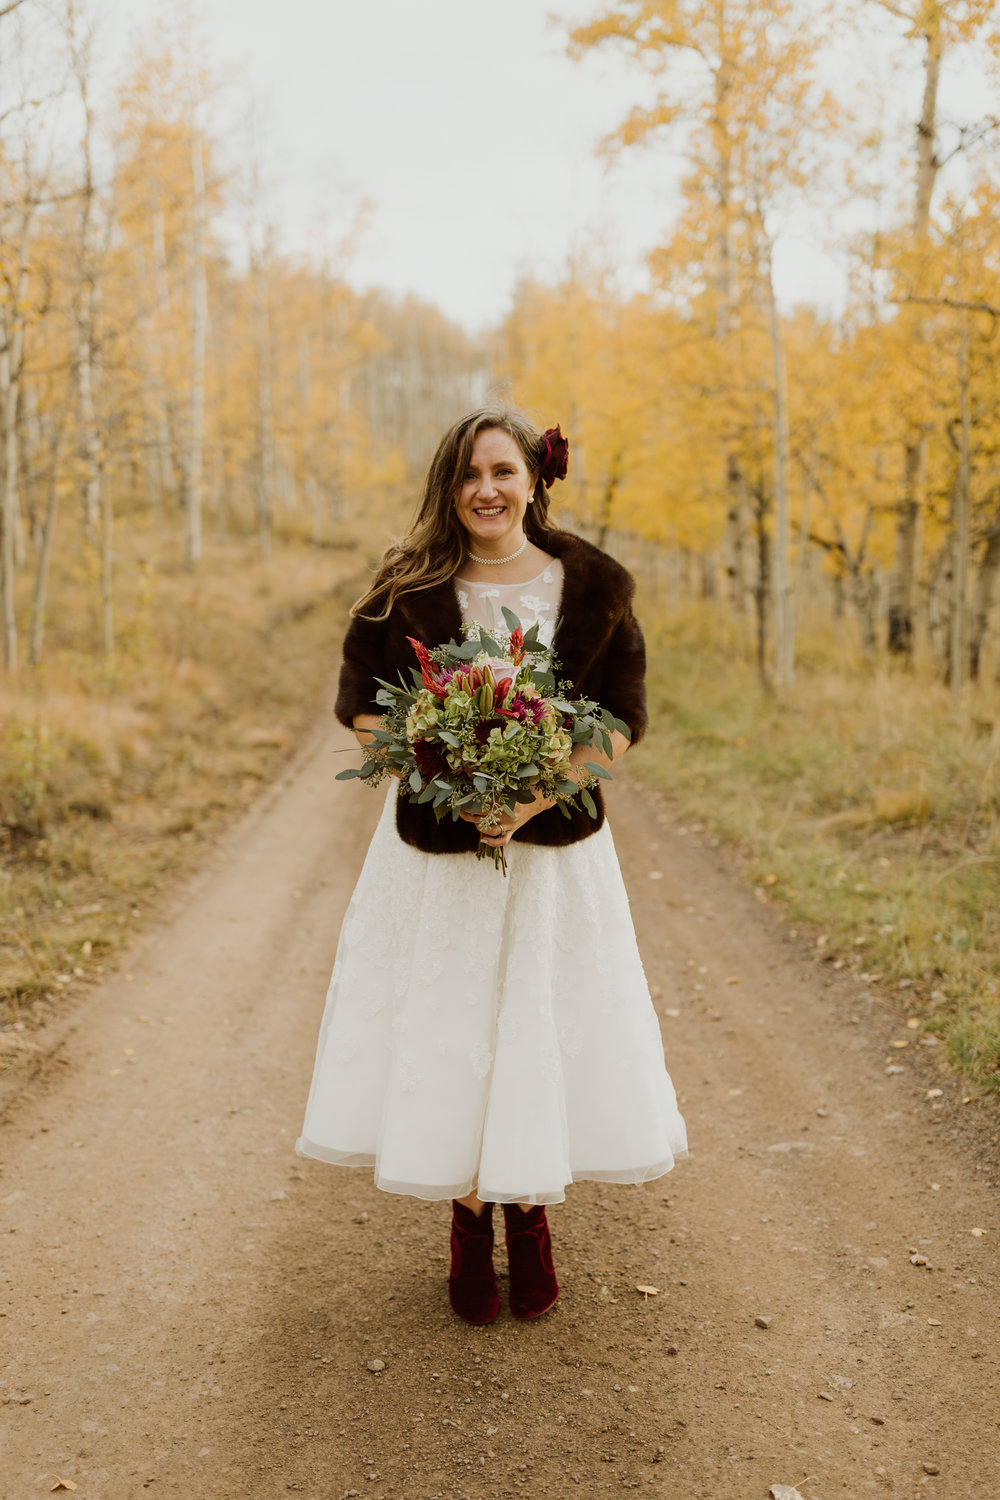 buena-vista-aspen-ridge-colorado-elopement-22.jpg